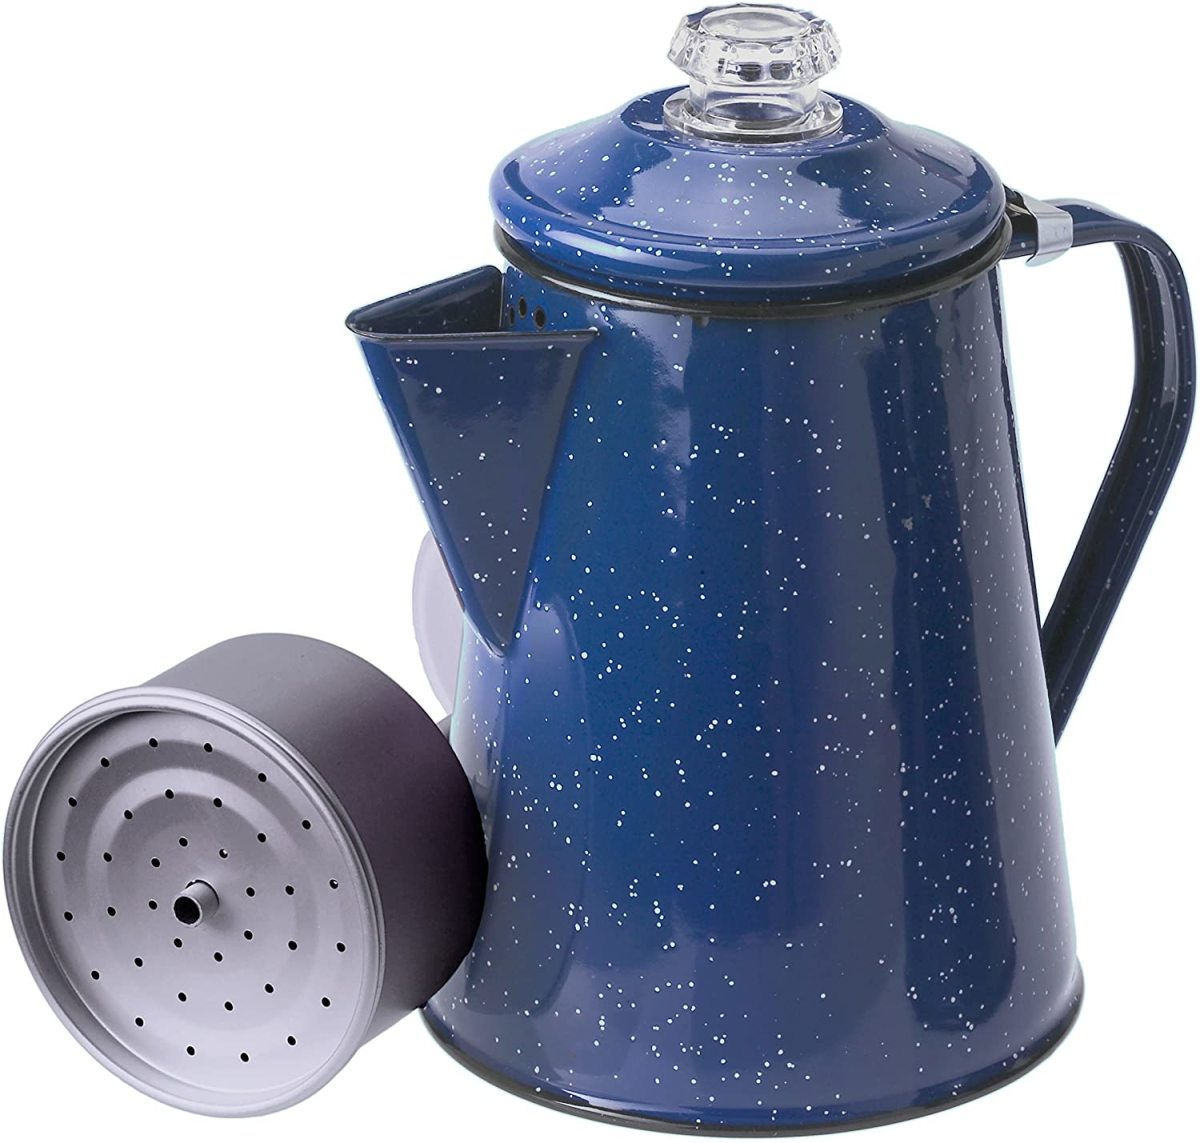 The GSI Outdoors Enamelware Percolator Coffee Pot.